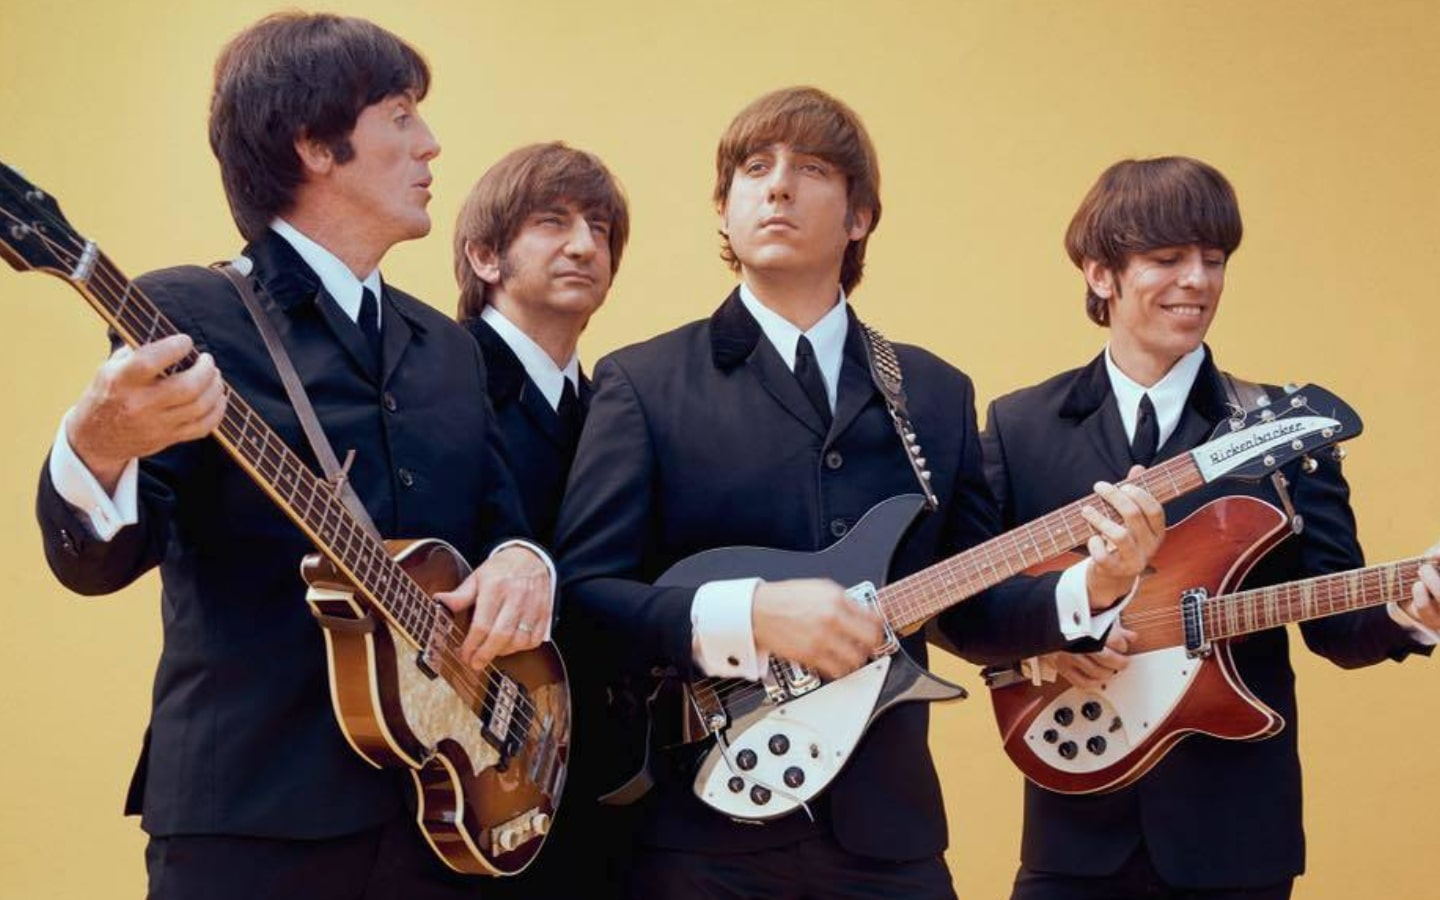 Band members of Bootleg Beatles, who will be performing at shows in Dubai Opera